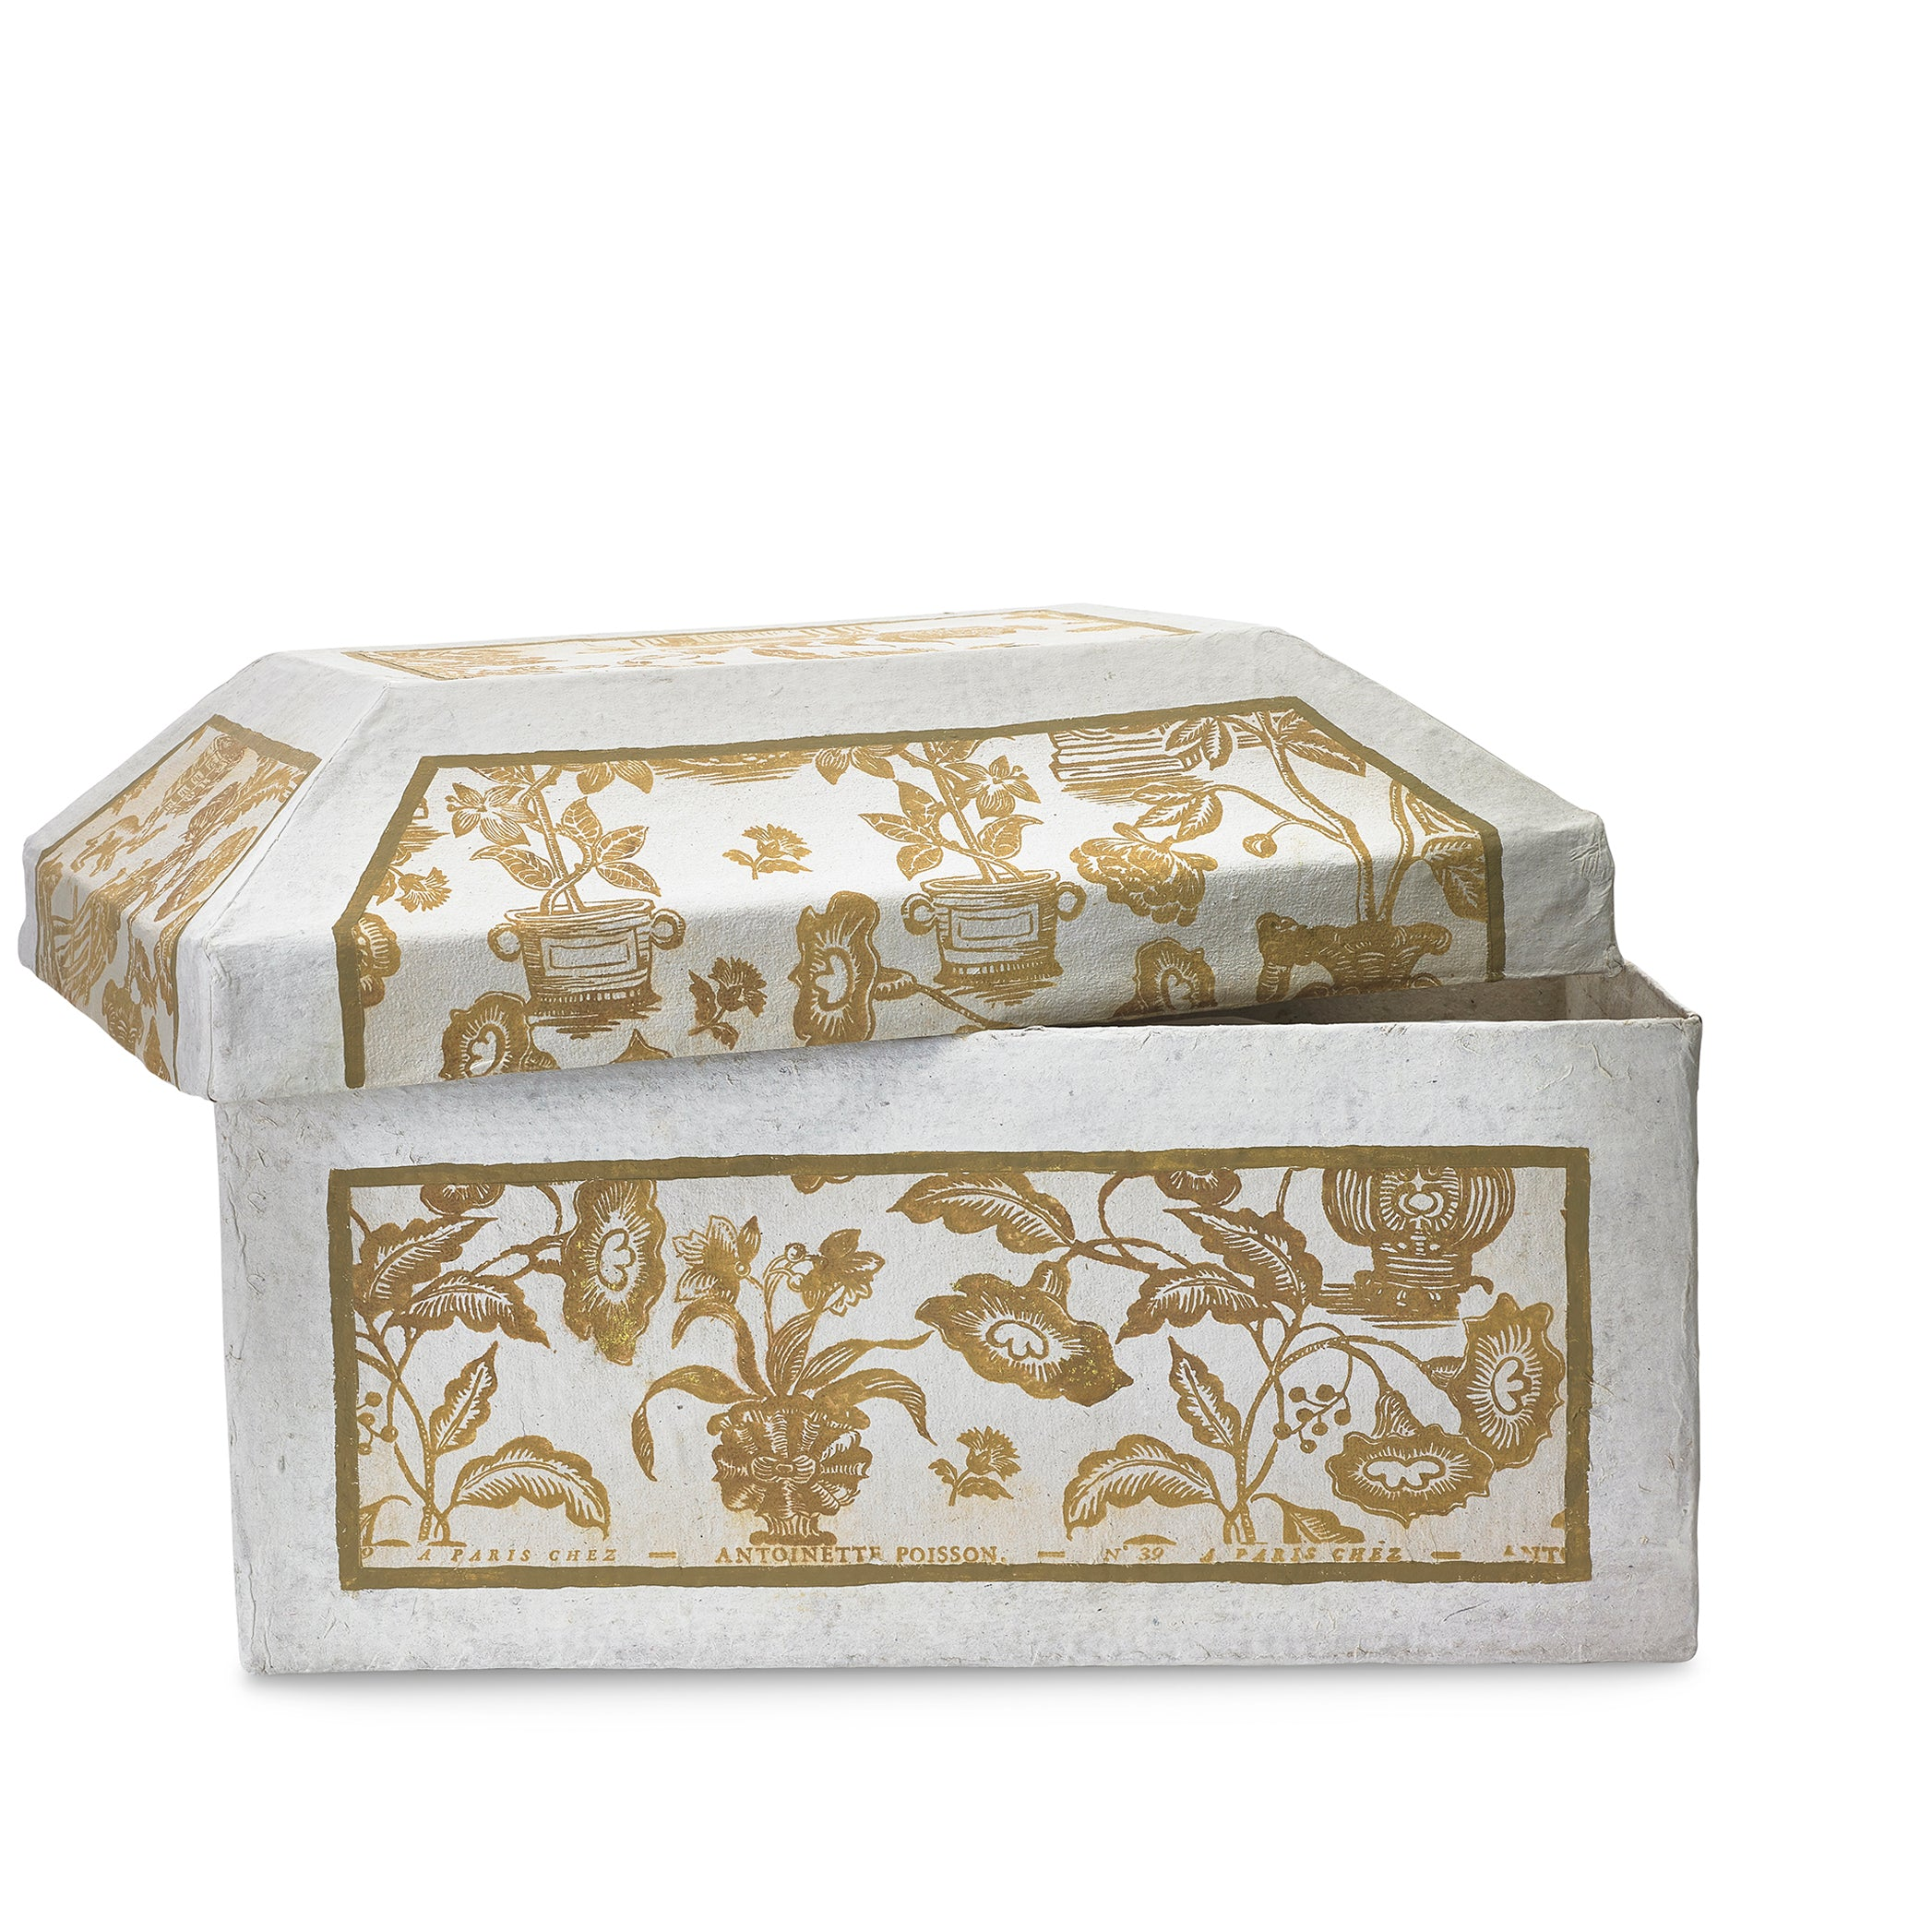 Antoinette Poisson Papier Maché Trésor Box in White and Gold